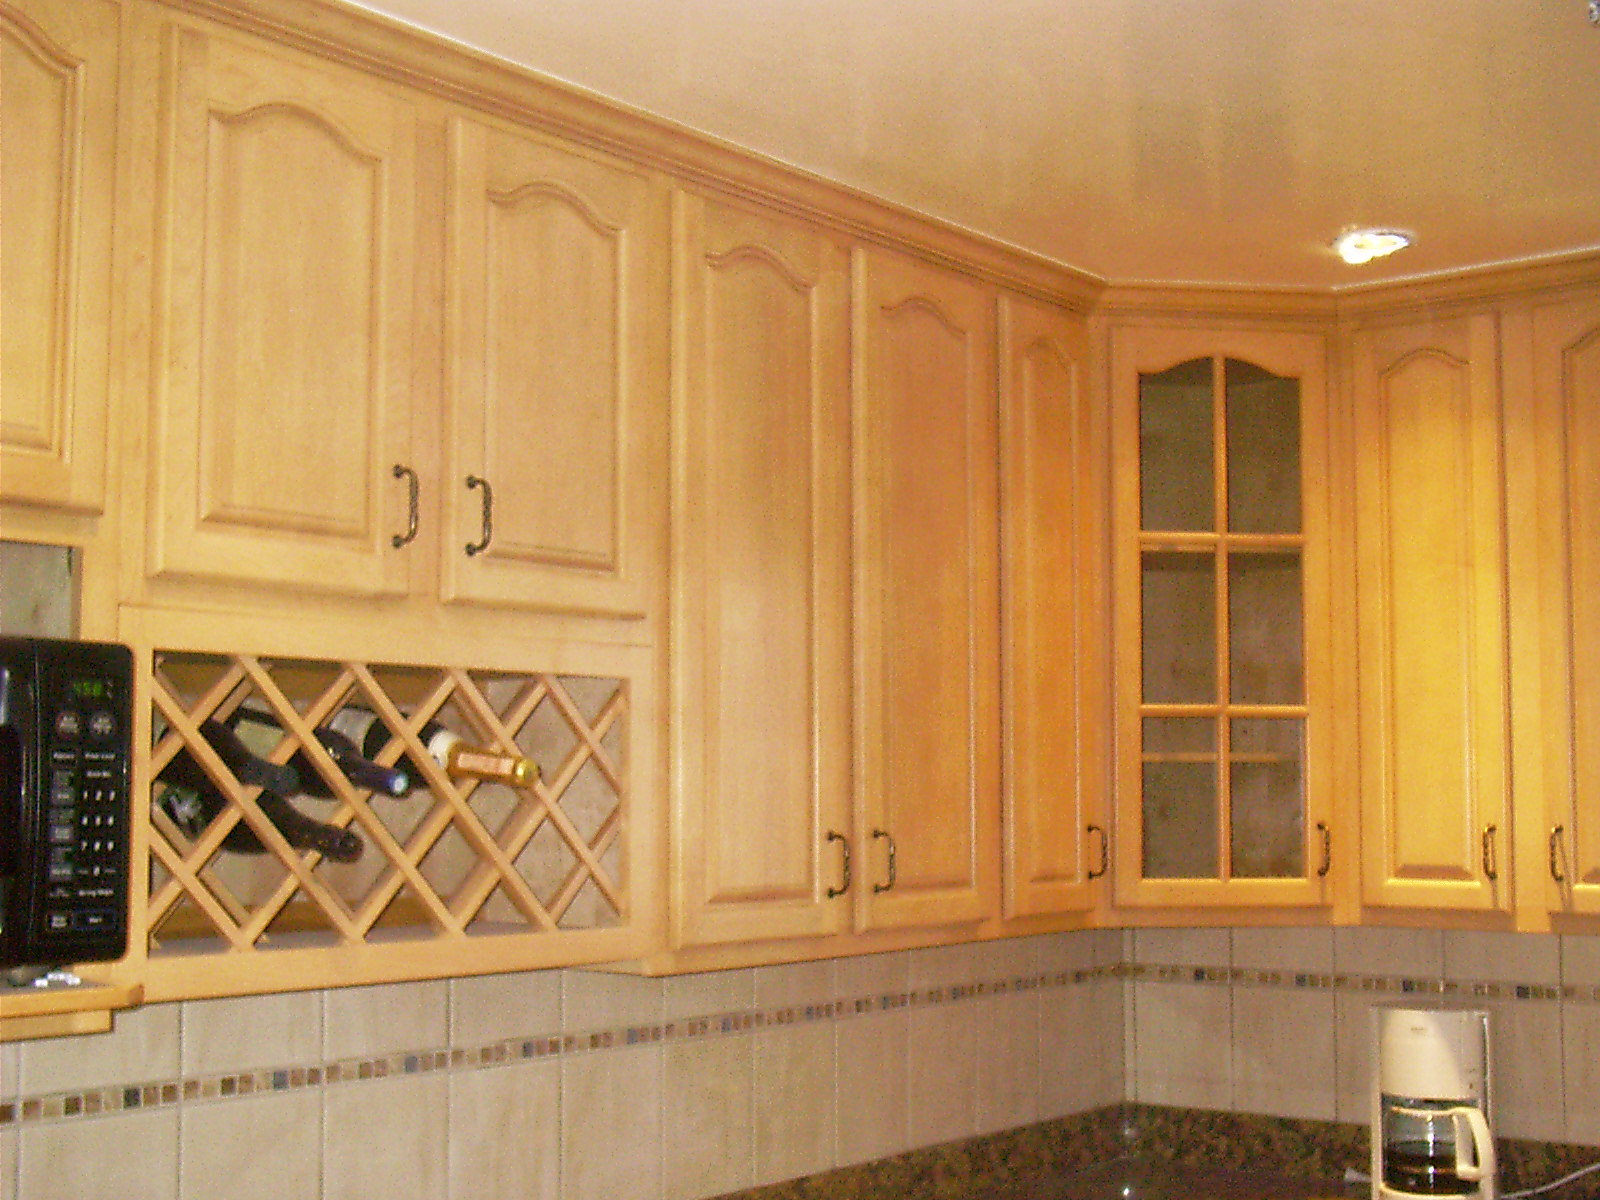 Remarkable Maple Kitchen Cabinets Design Ideas 1600 x 1200 · 406 kB · jpeg